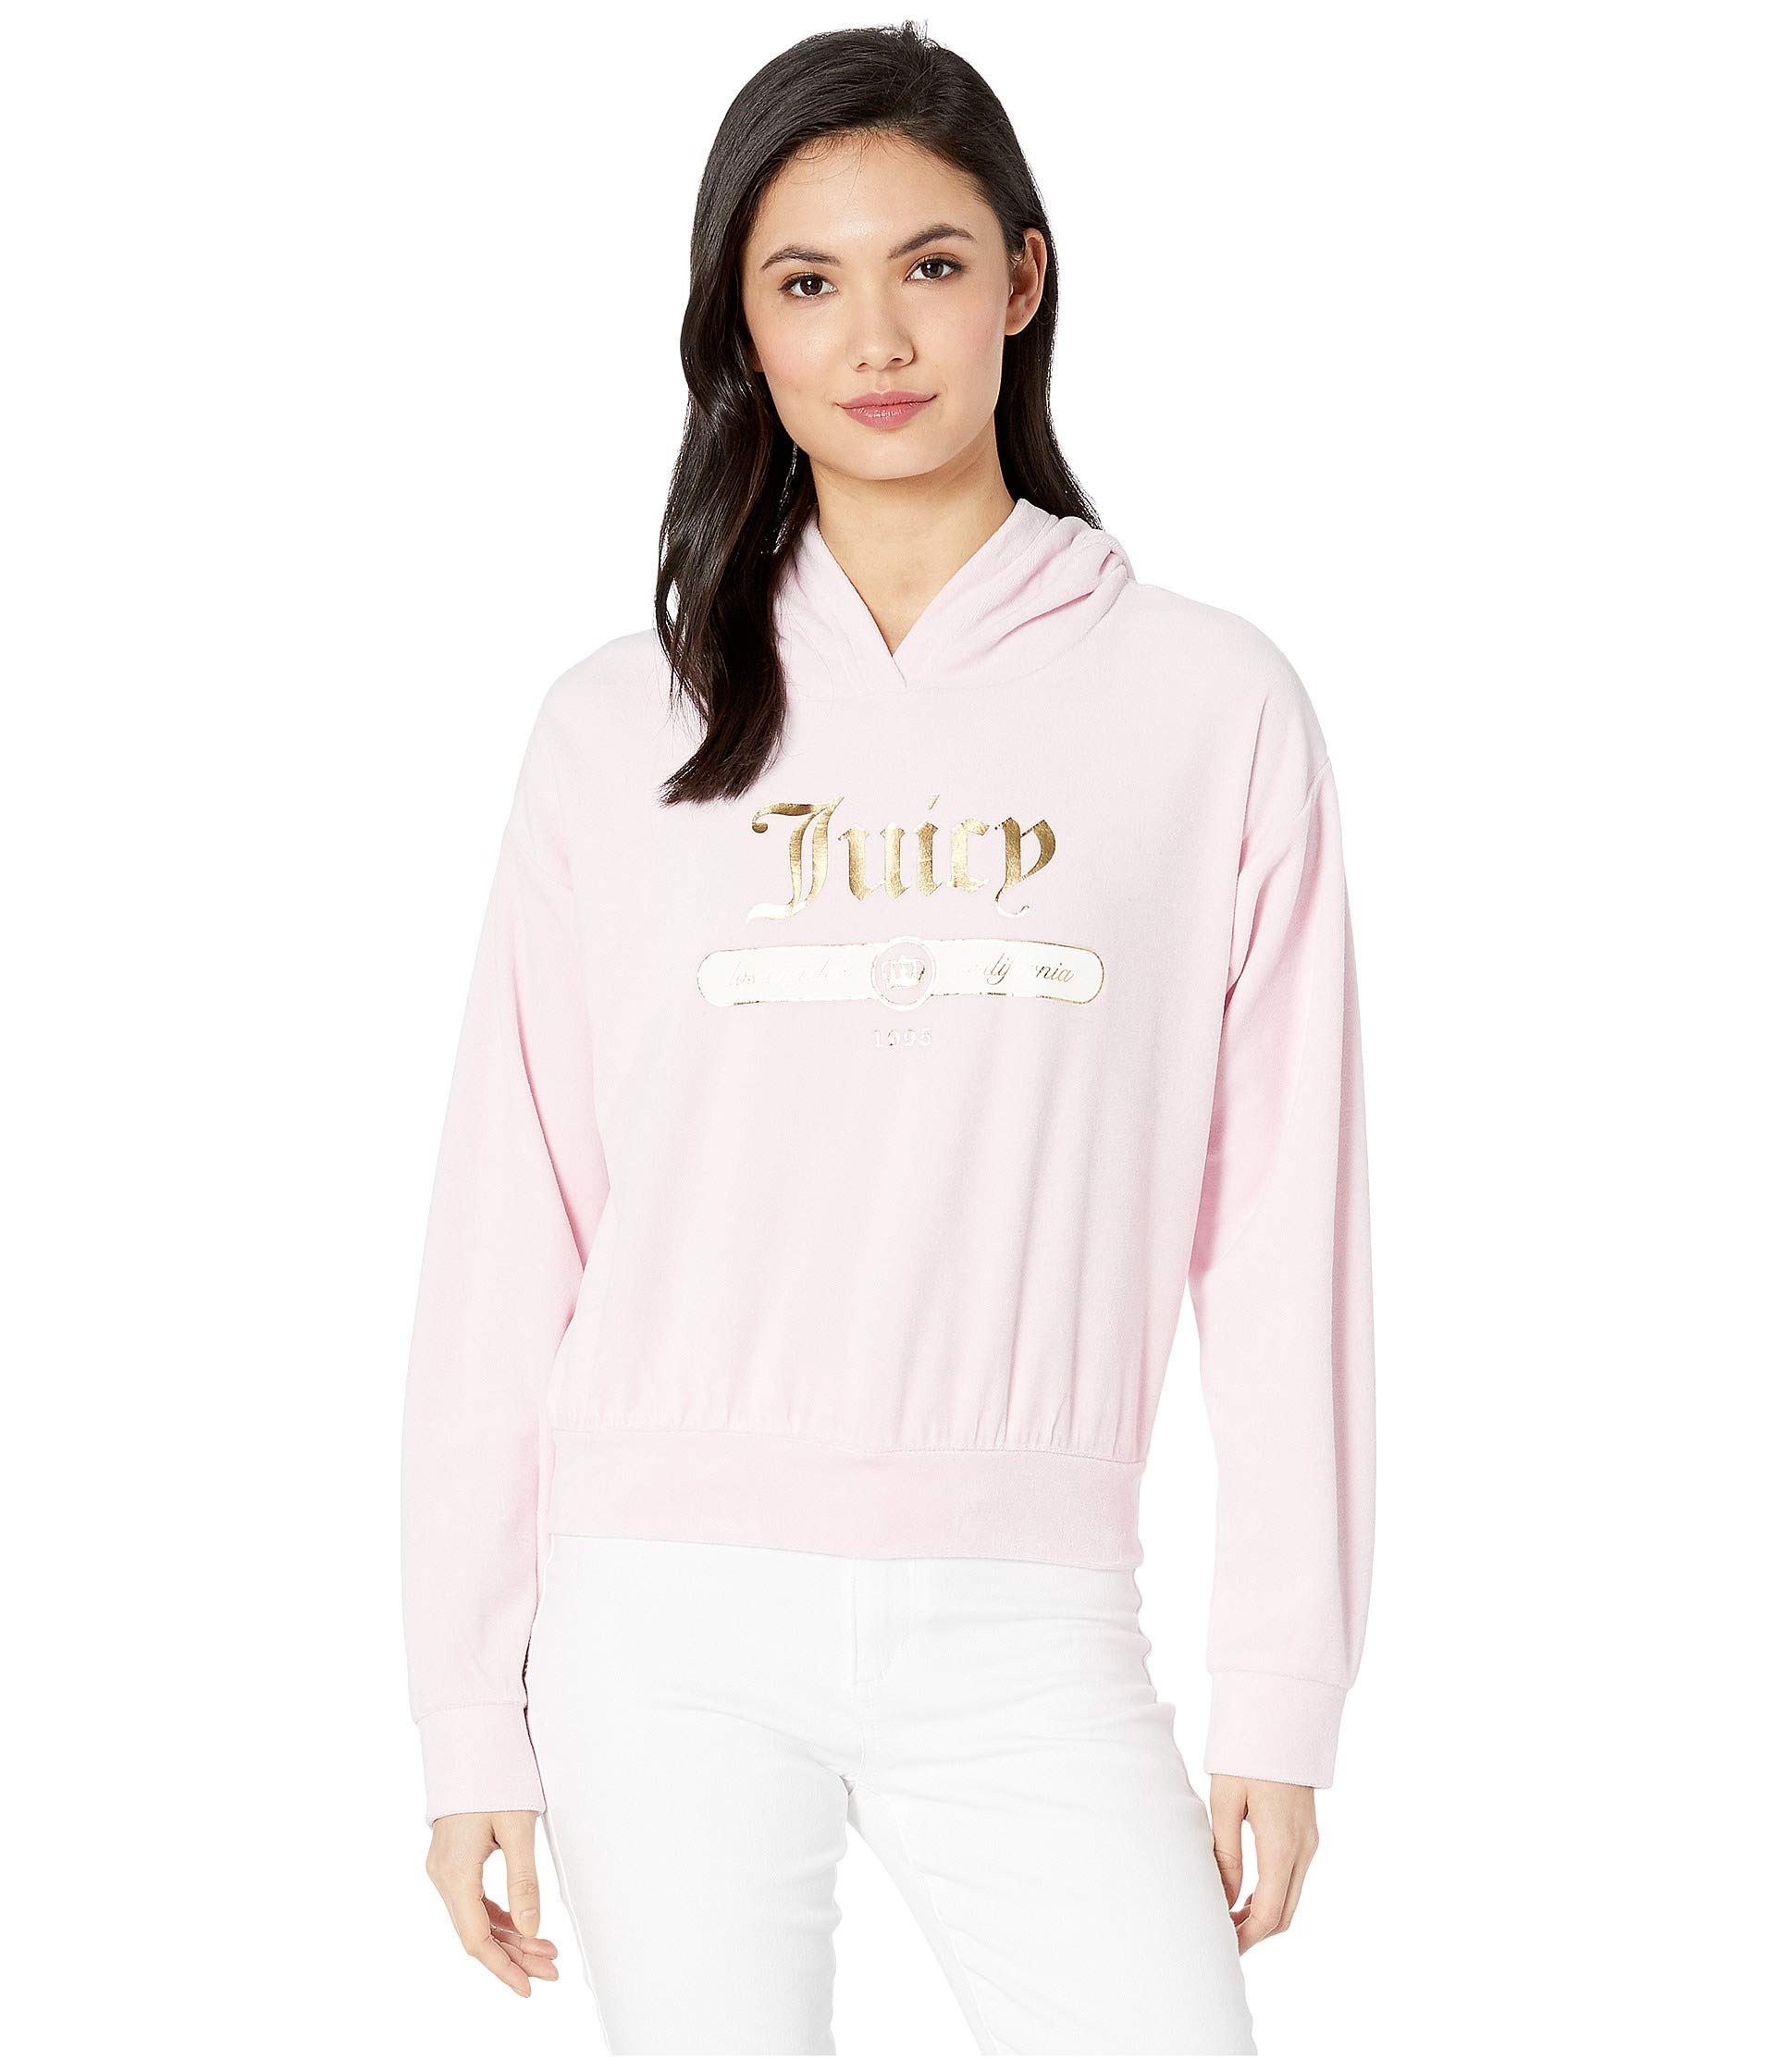 Juicy Couture Women's Juicy Emblem Velour Logo Hooded Pullover